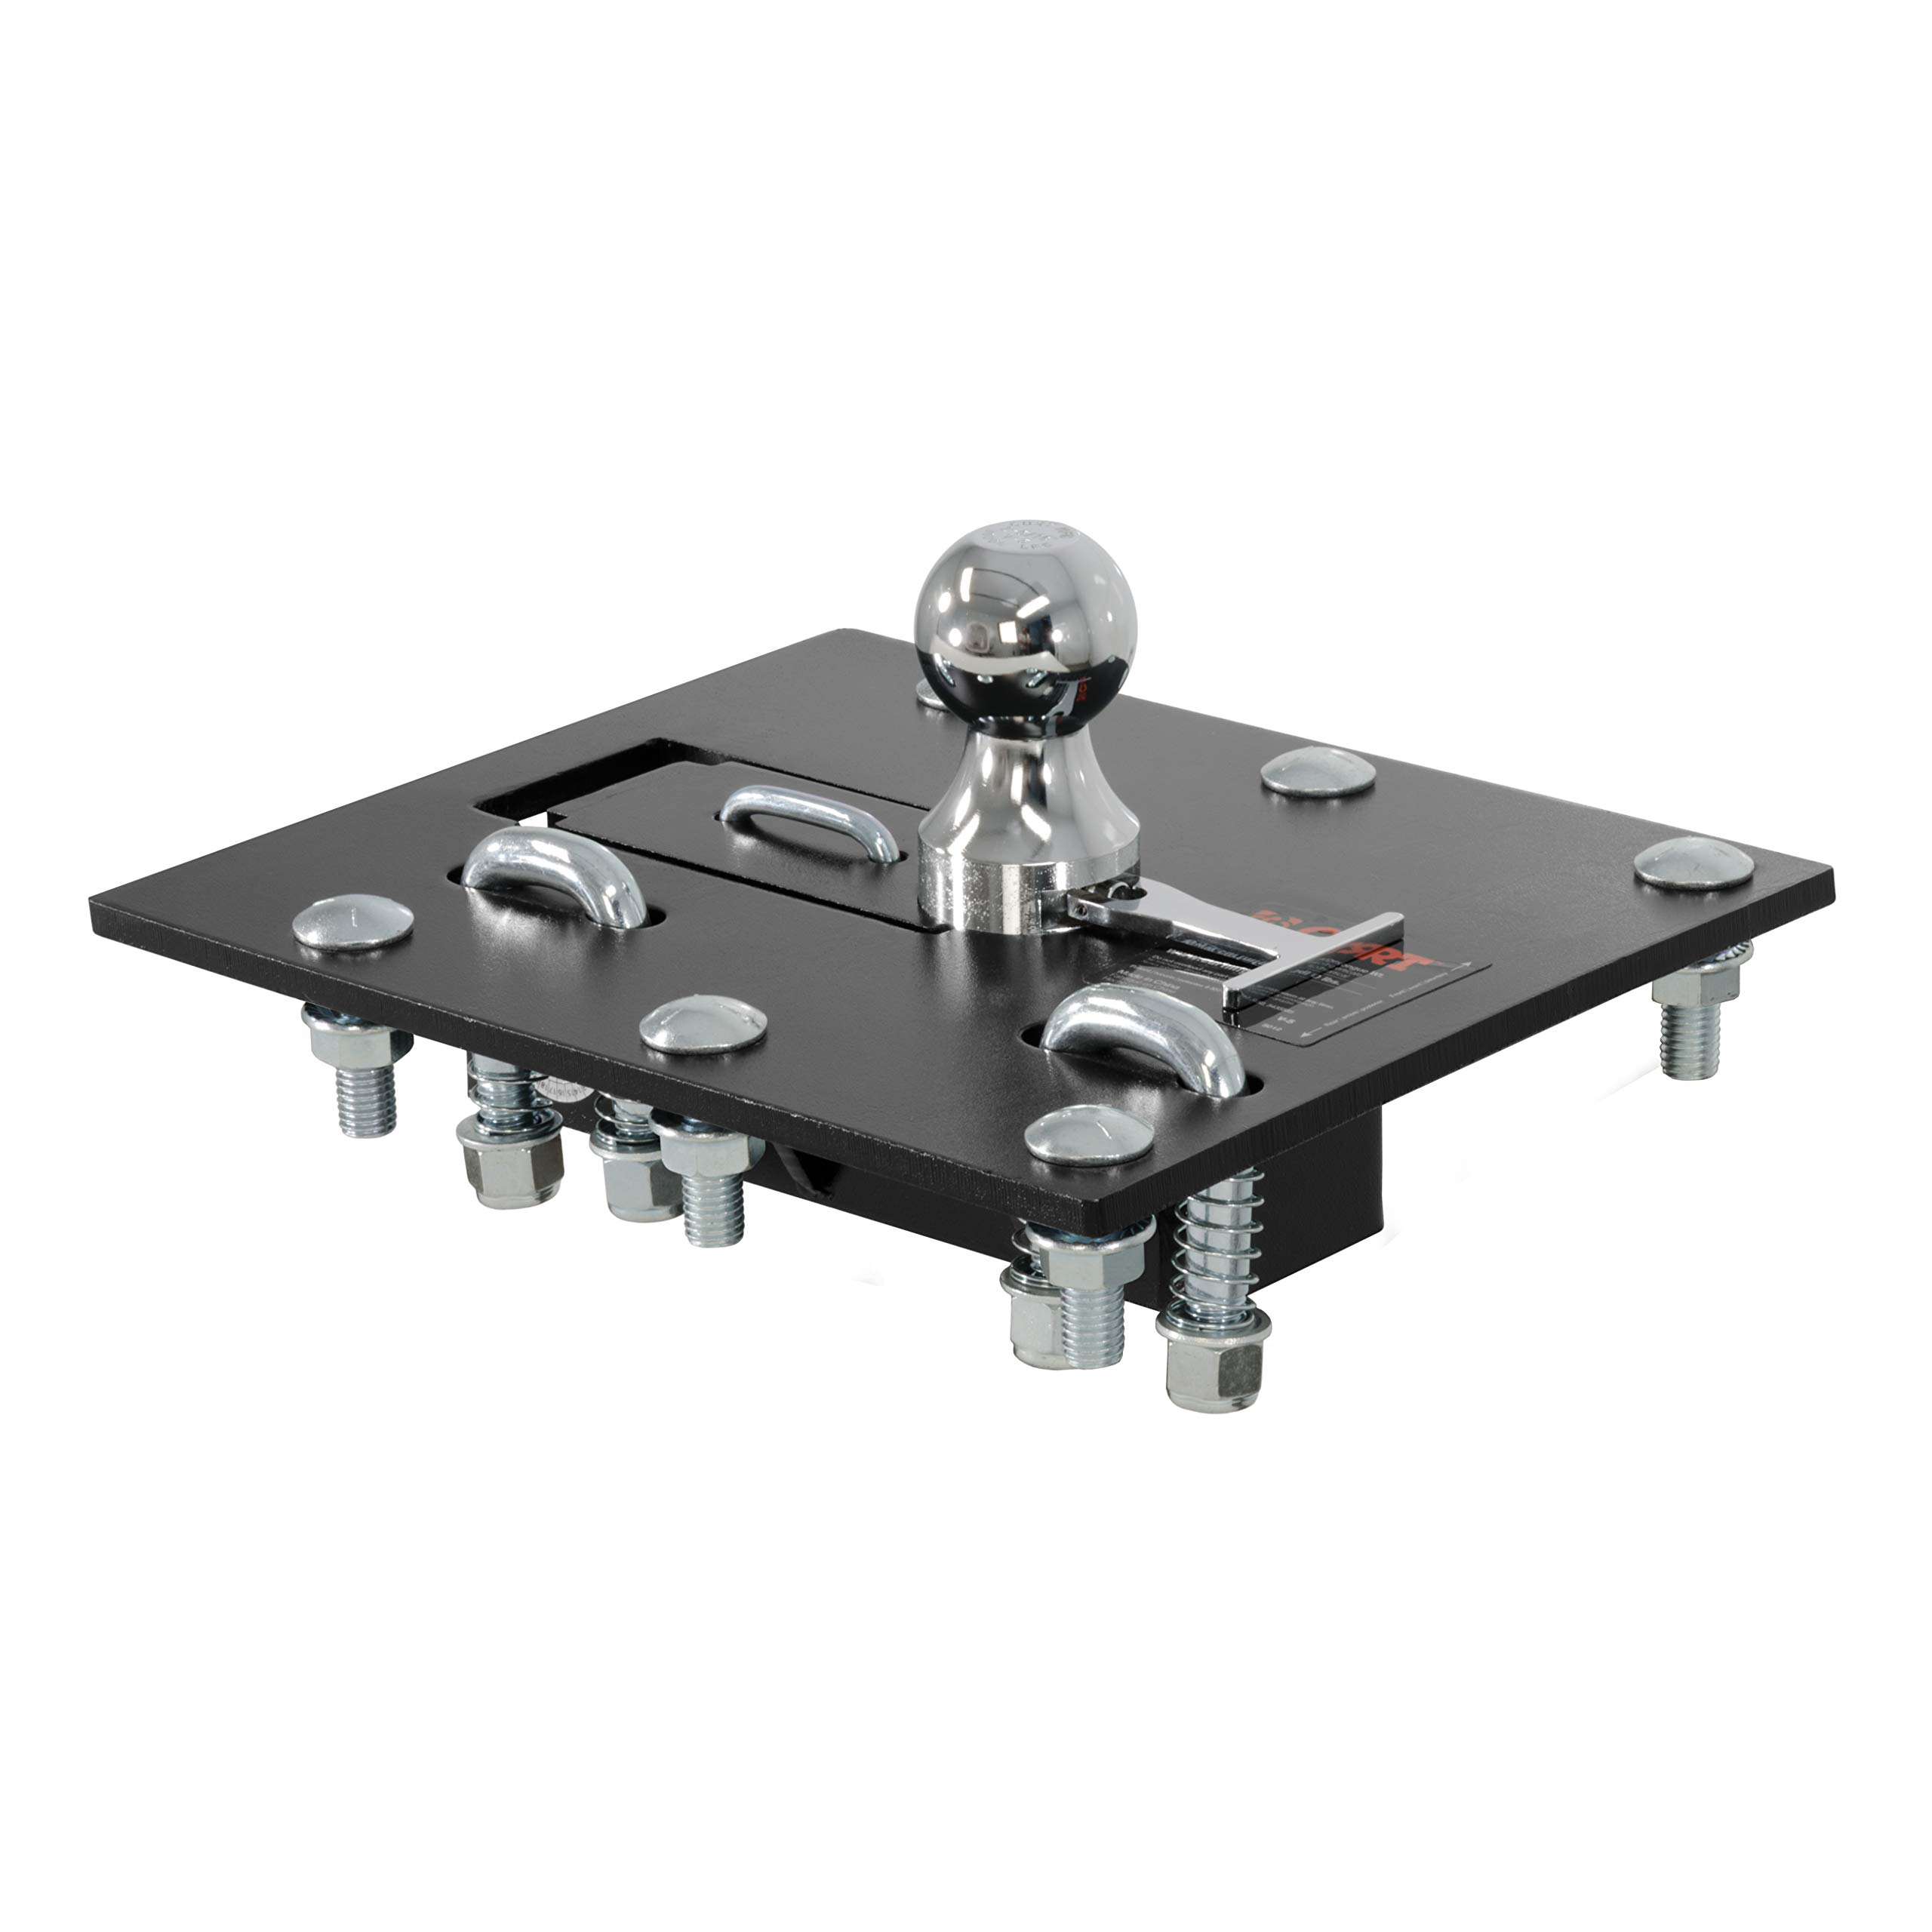 CURT 61052 Black, 2-5/16-Inch Bed Folding Gooseneck Hitch (30,000 lbs. GTW, 2-5/16'' Ball, Installation Brackets Sold Separately) by CURT